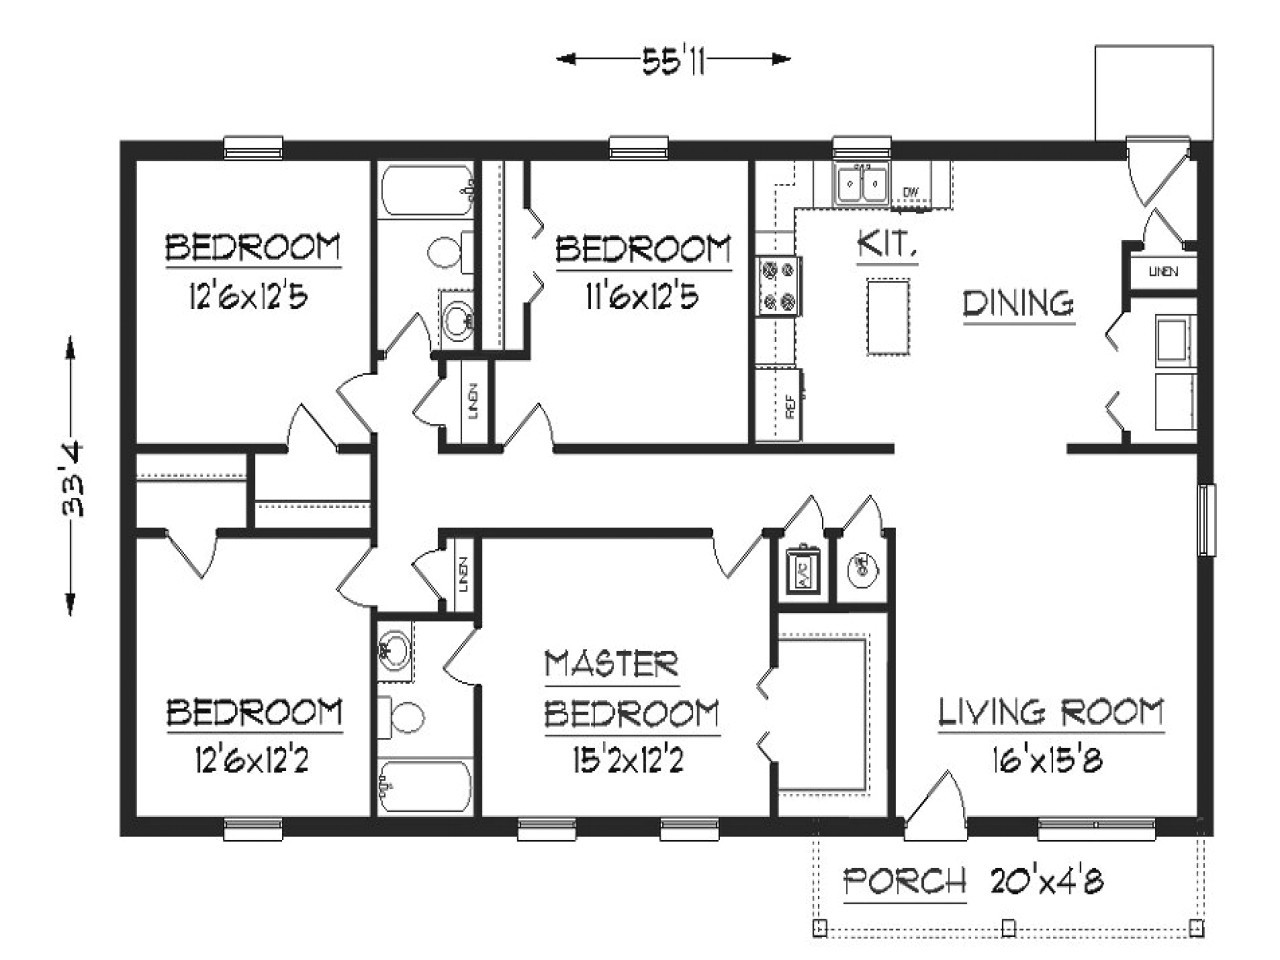 aa0996767e61f7c7 simple small house floor plans small house floor plans philippines